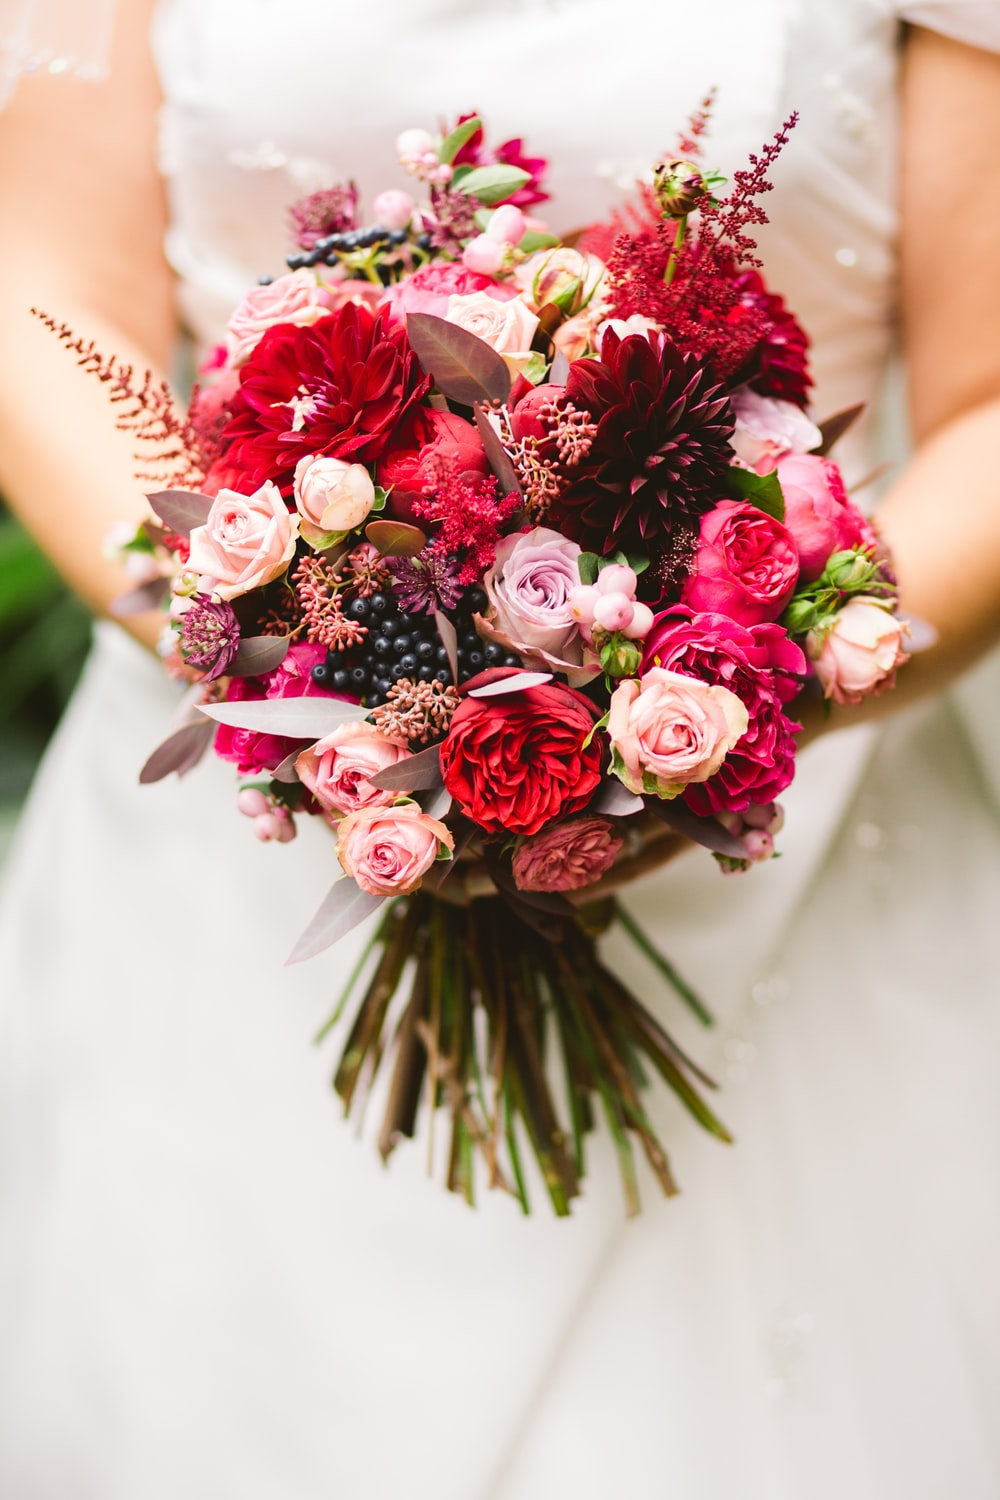 500+ Bouquet Pictures | Download Free Images on Unsplash